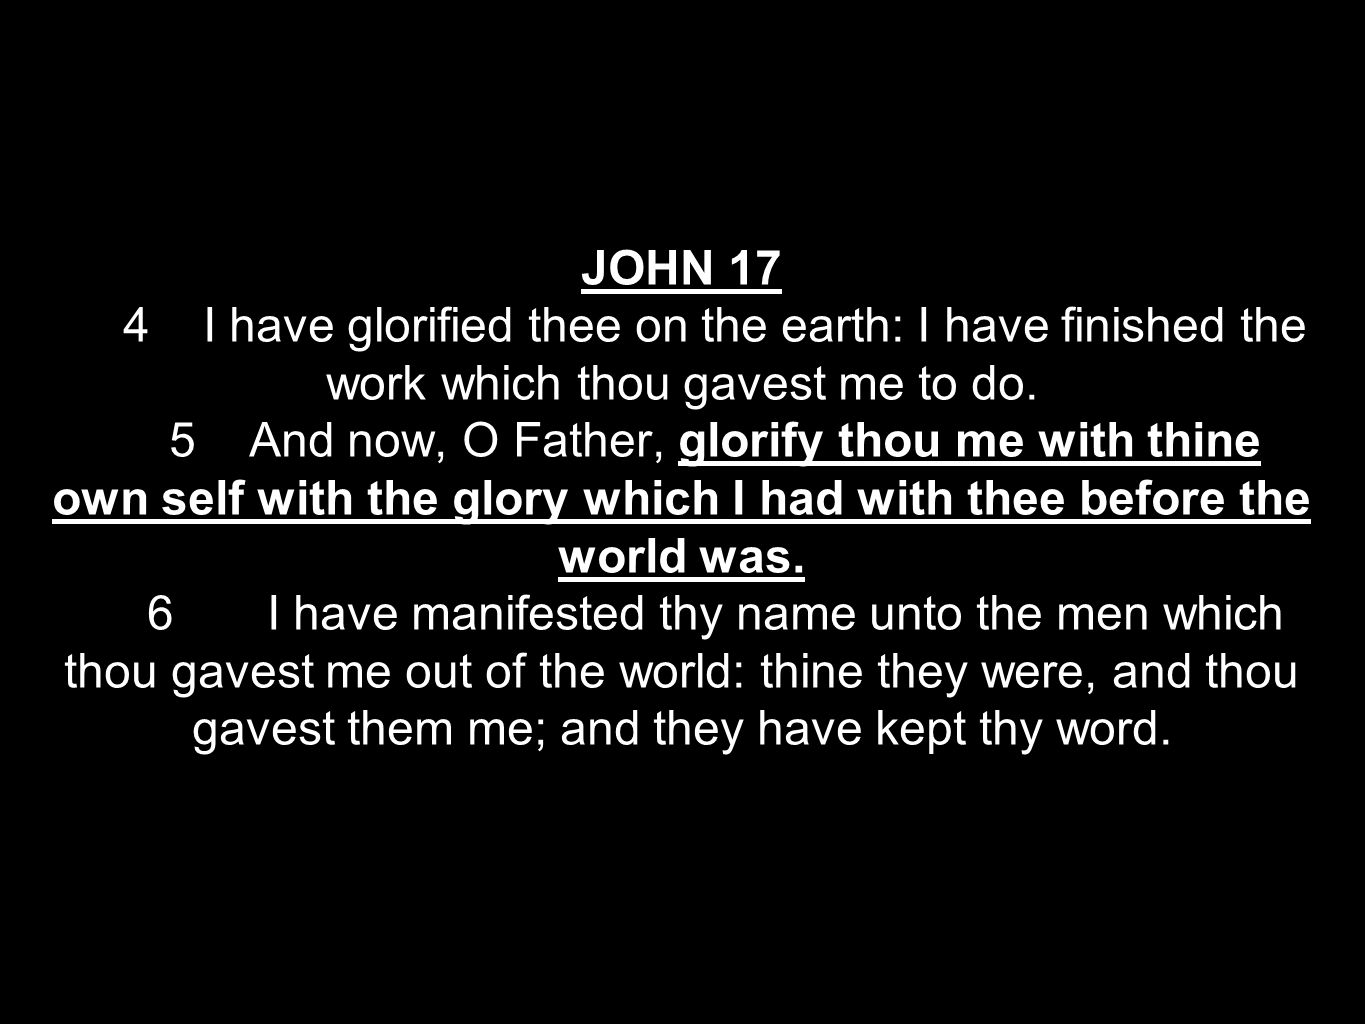 JOHN 17 4 I have glorified thee on the earth: I have finished the work which thou gavest me to do.